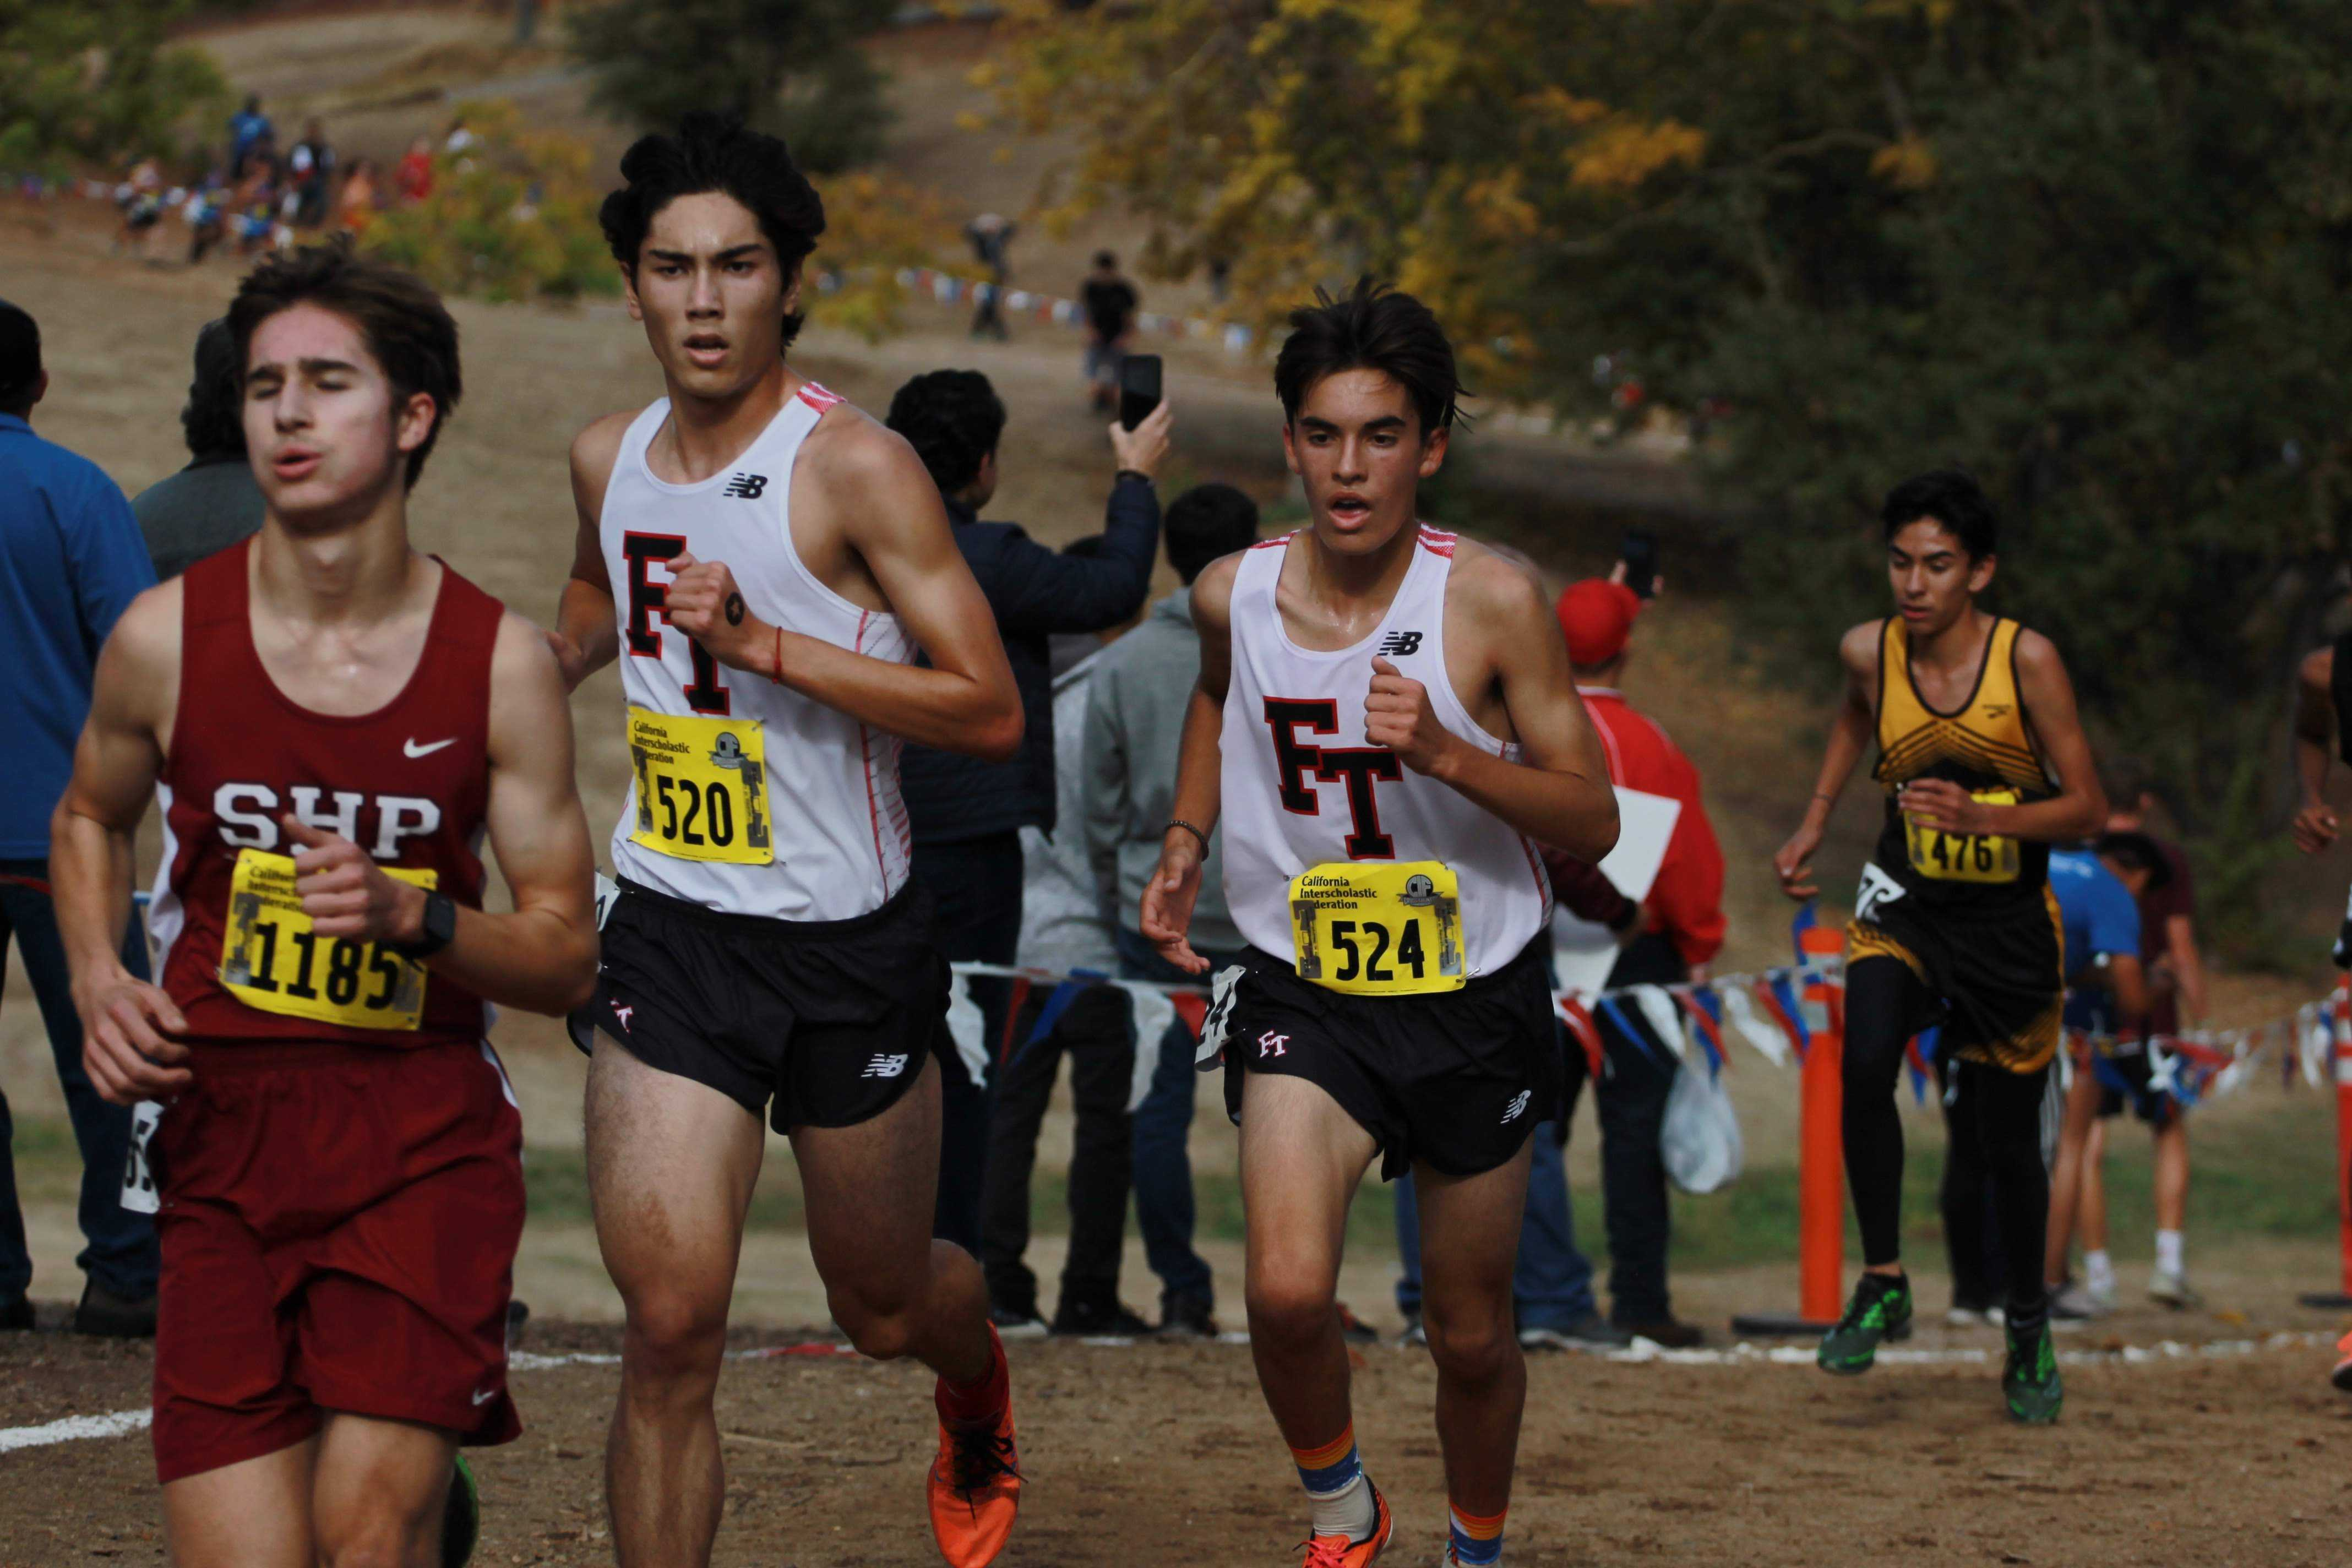 Jason Messner and Joshua Villasenor work up the hill at the two-mile marker. Credit: Jocelyn Brossia / The Foothill Dragon Press